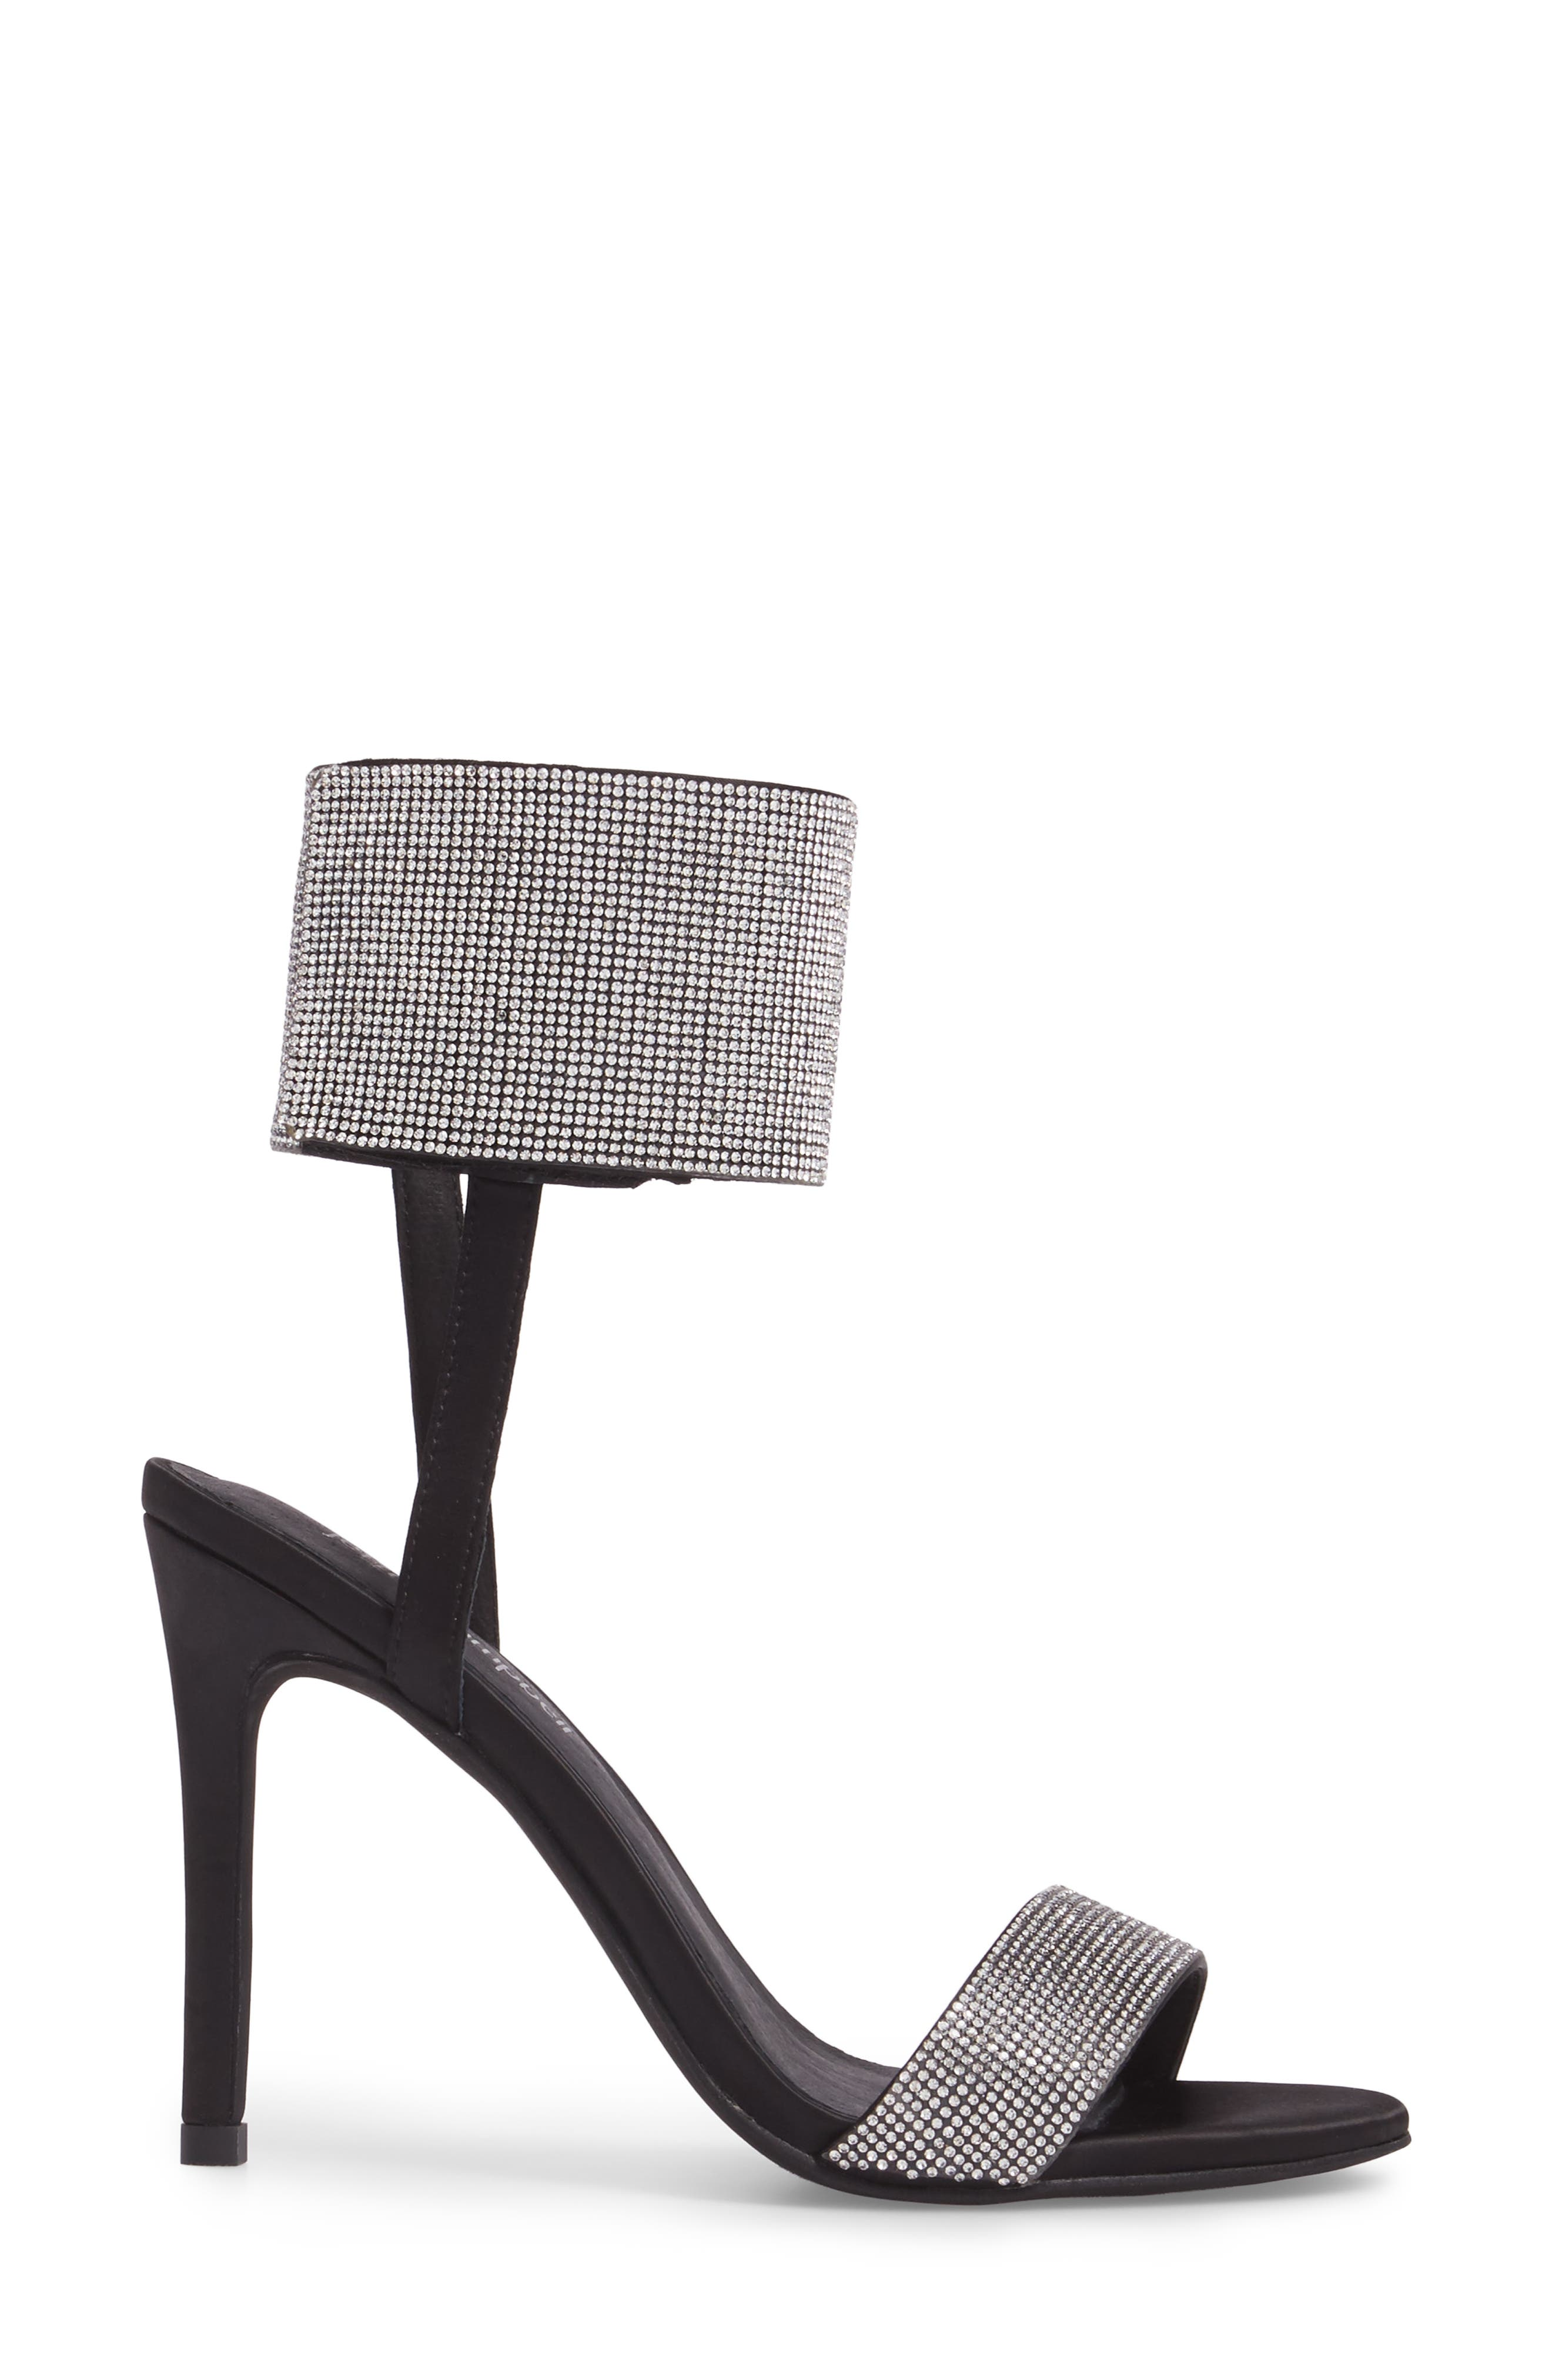 Frost Ankle Cuff Sandal,                             Alternate thumbnail 3, color,                             Black Silver